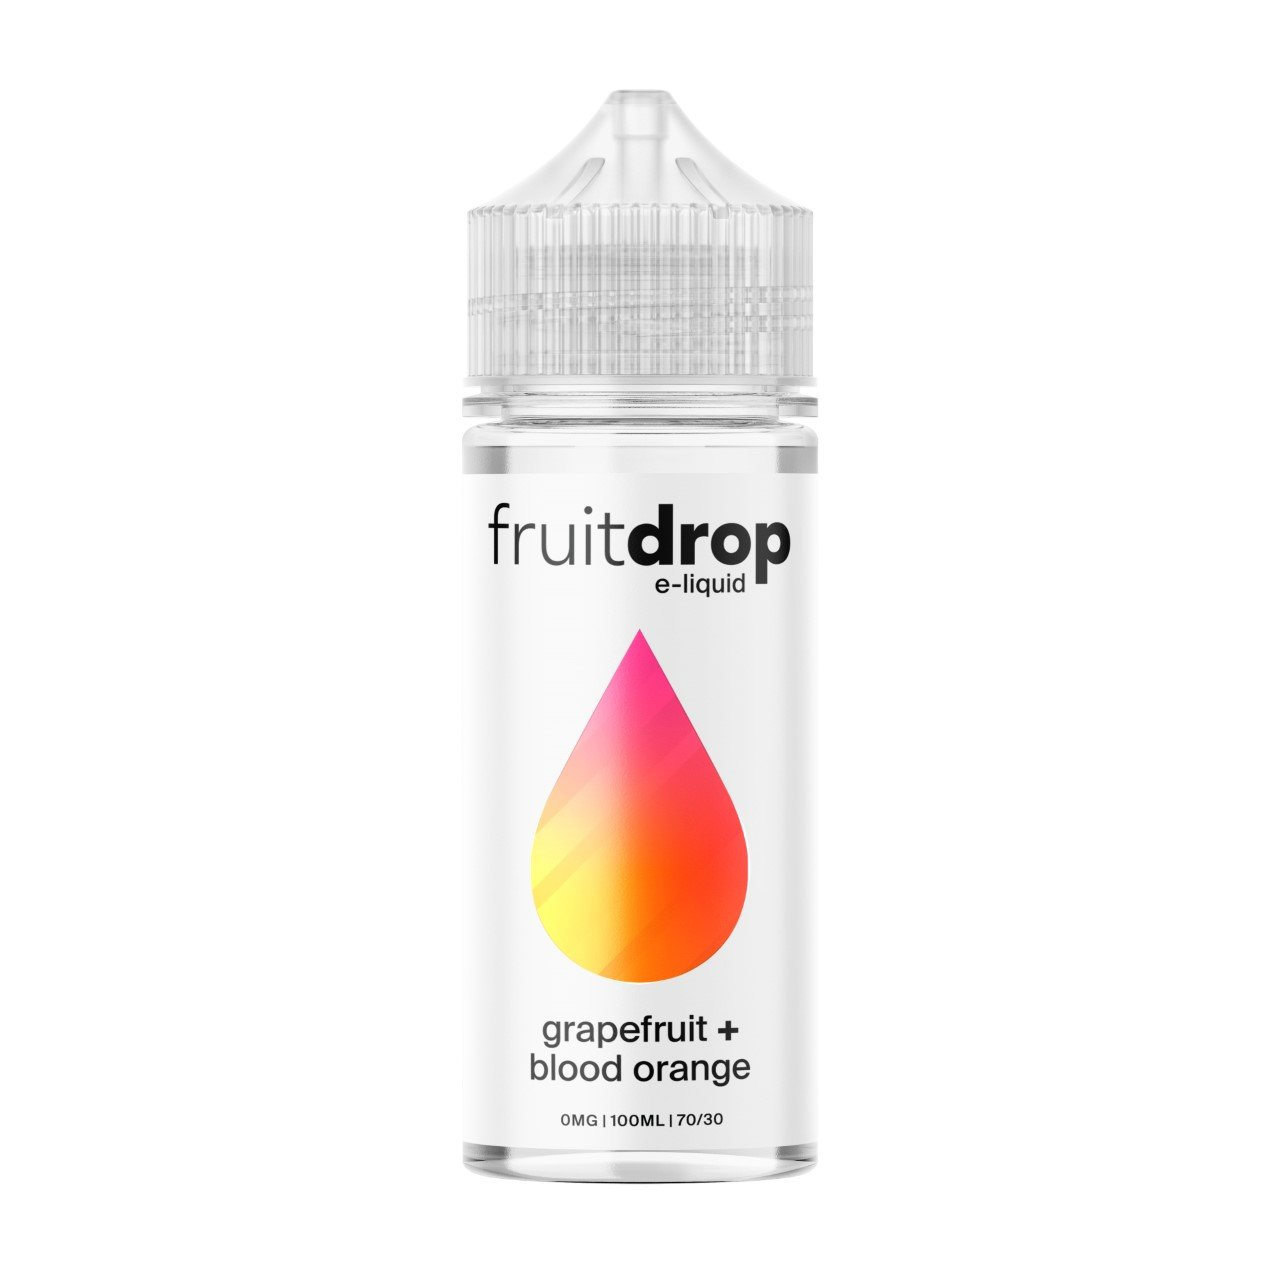 Fruit_Drop_100ml_Bottle_Mockup_Grapefruit_Blood_Orange